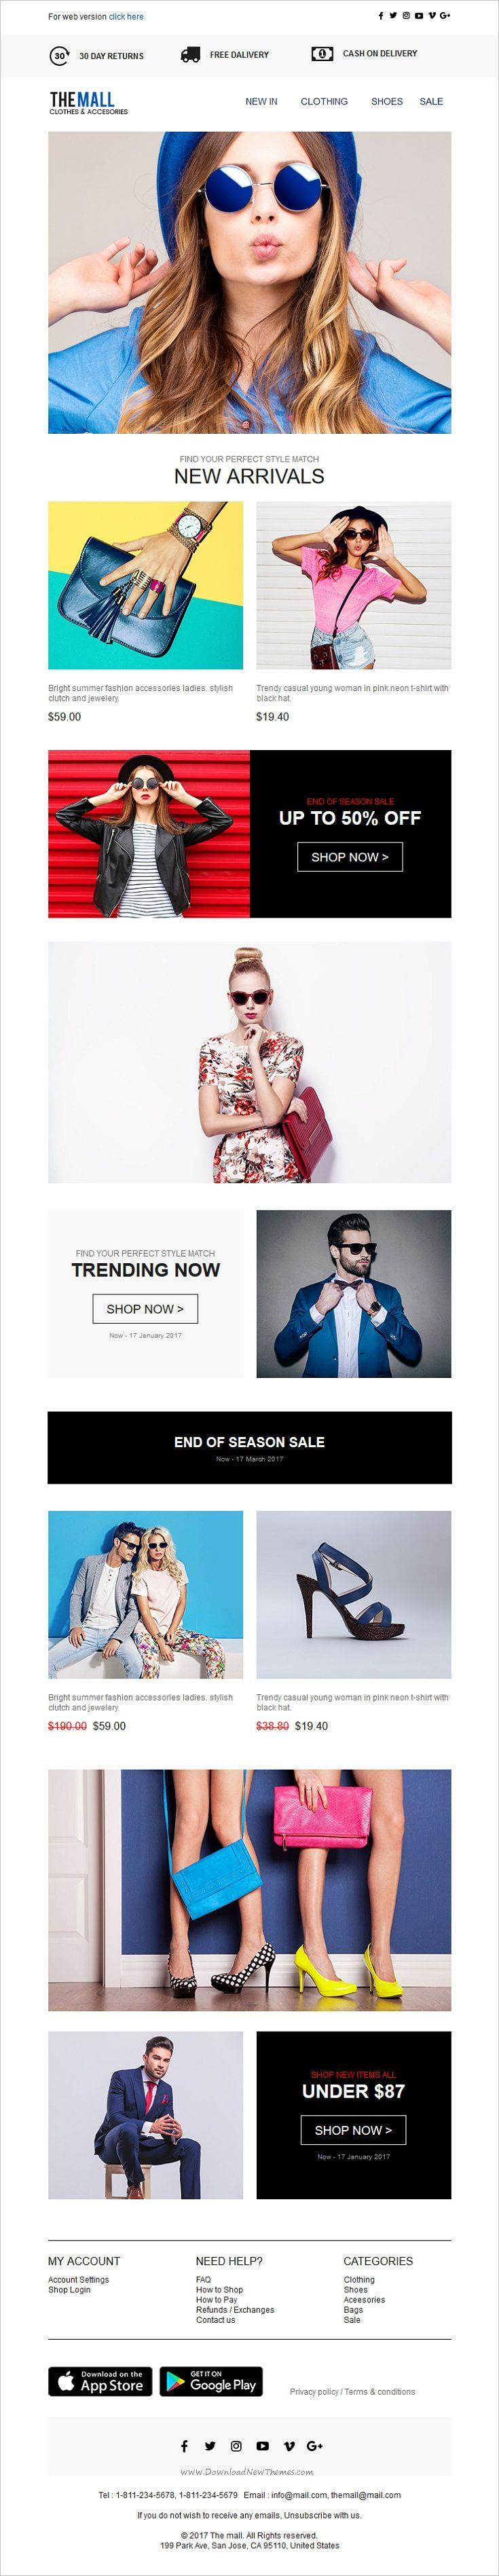 The mall is a responsive #eCommerce and #shopping #email newsletter template for viral #marketing with stamp ready builder download now➩ https://themeforest.net/item/the-mall-responsive-ecommerce-shopping-email-template-stampready-builder/19520508?ref=Datasata